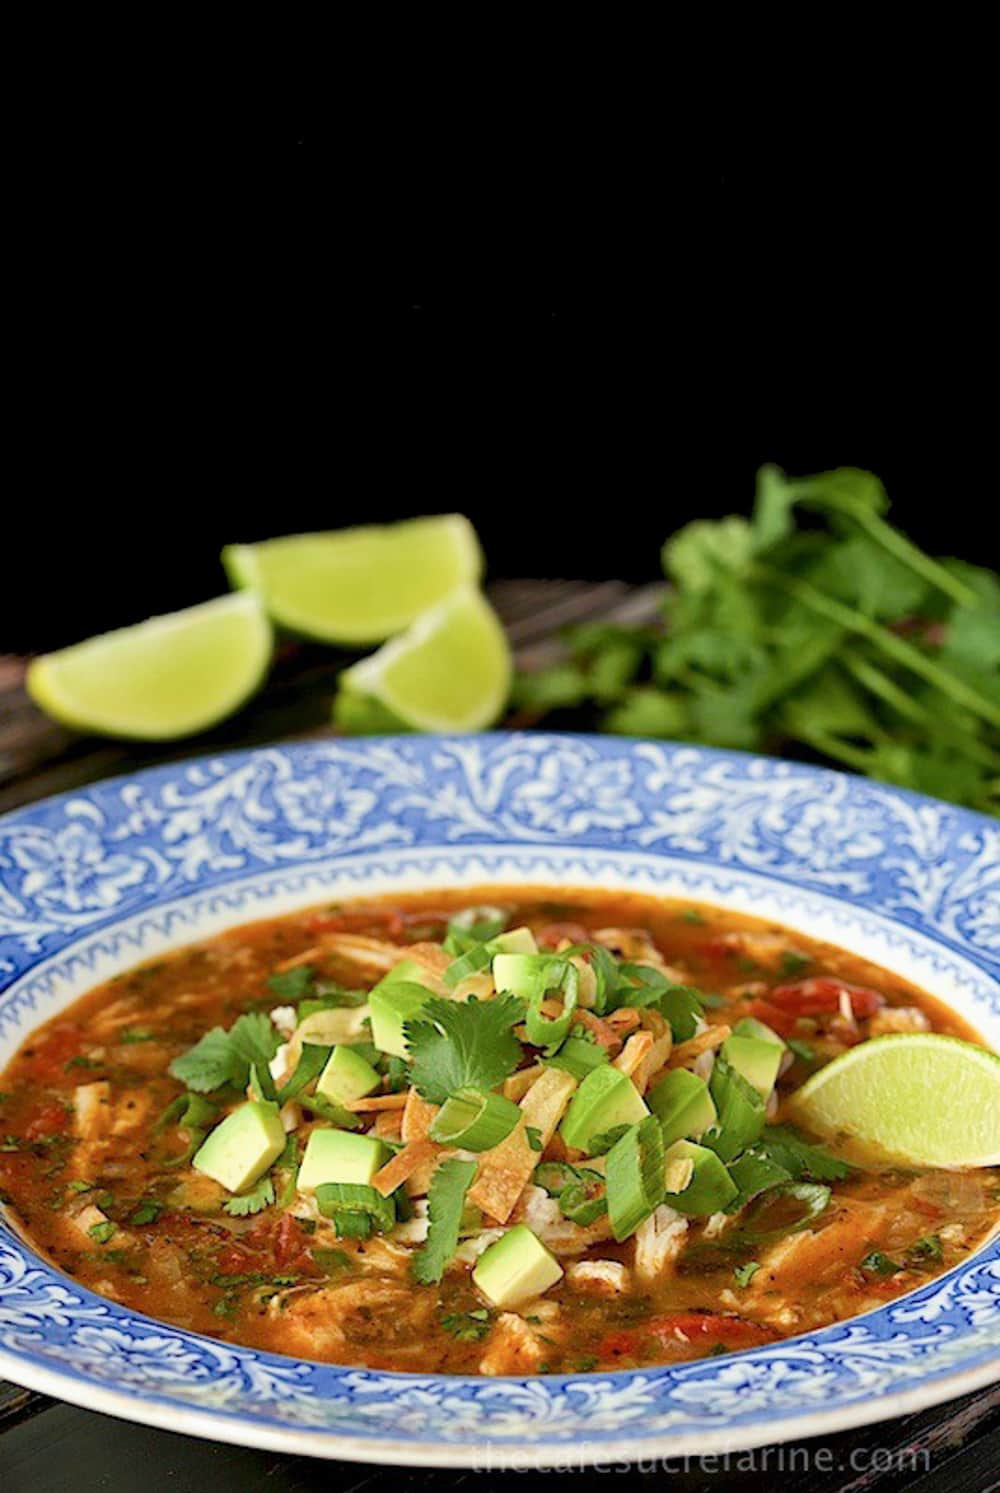 a picture of Turkey Tortilla soup in blue and white bowl with garnishes in the background